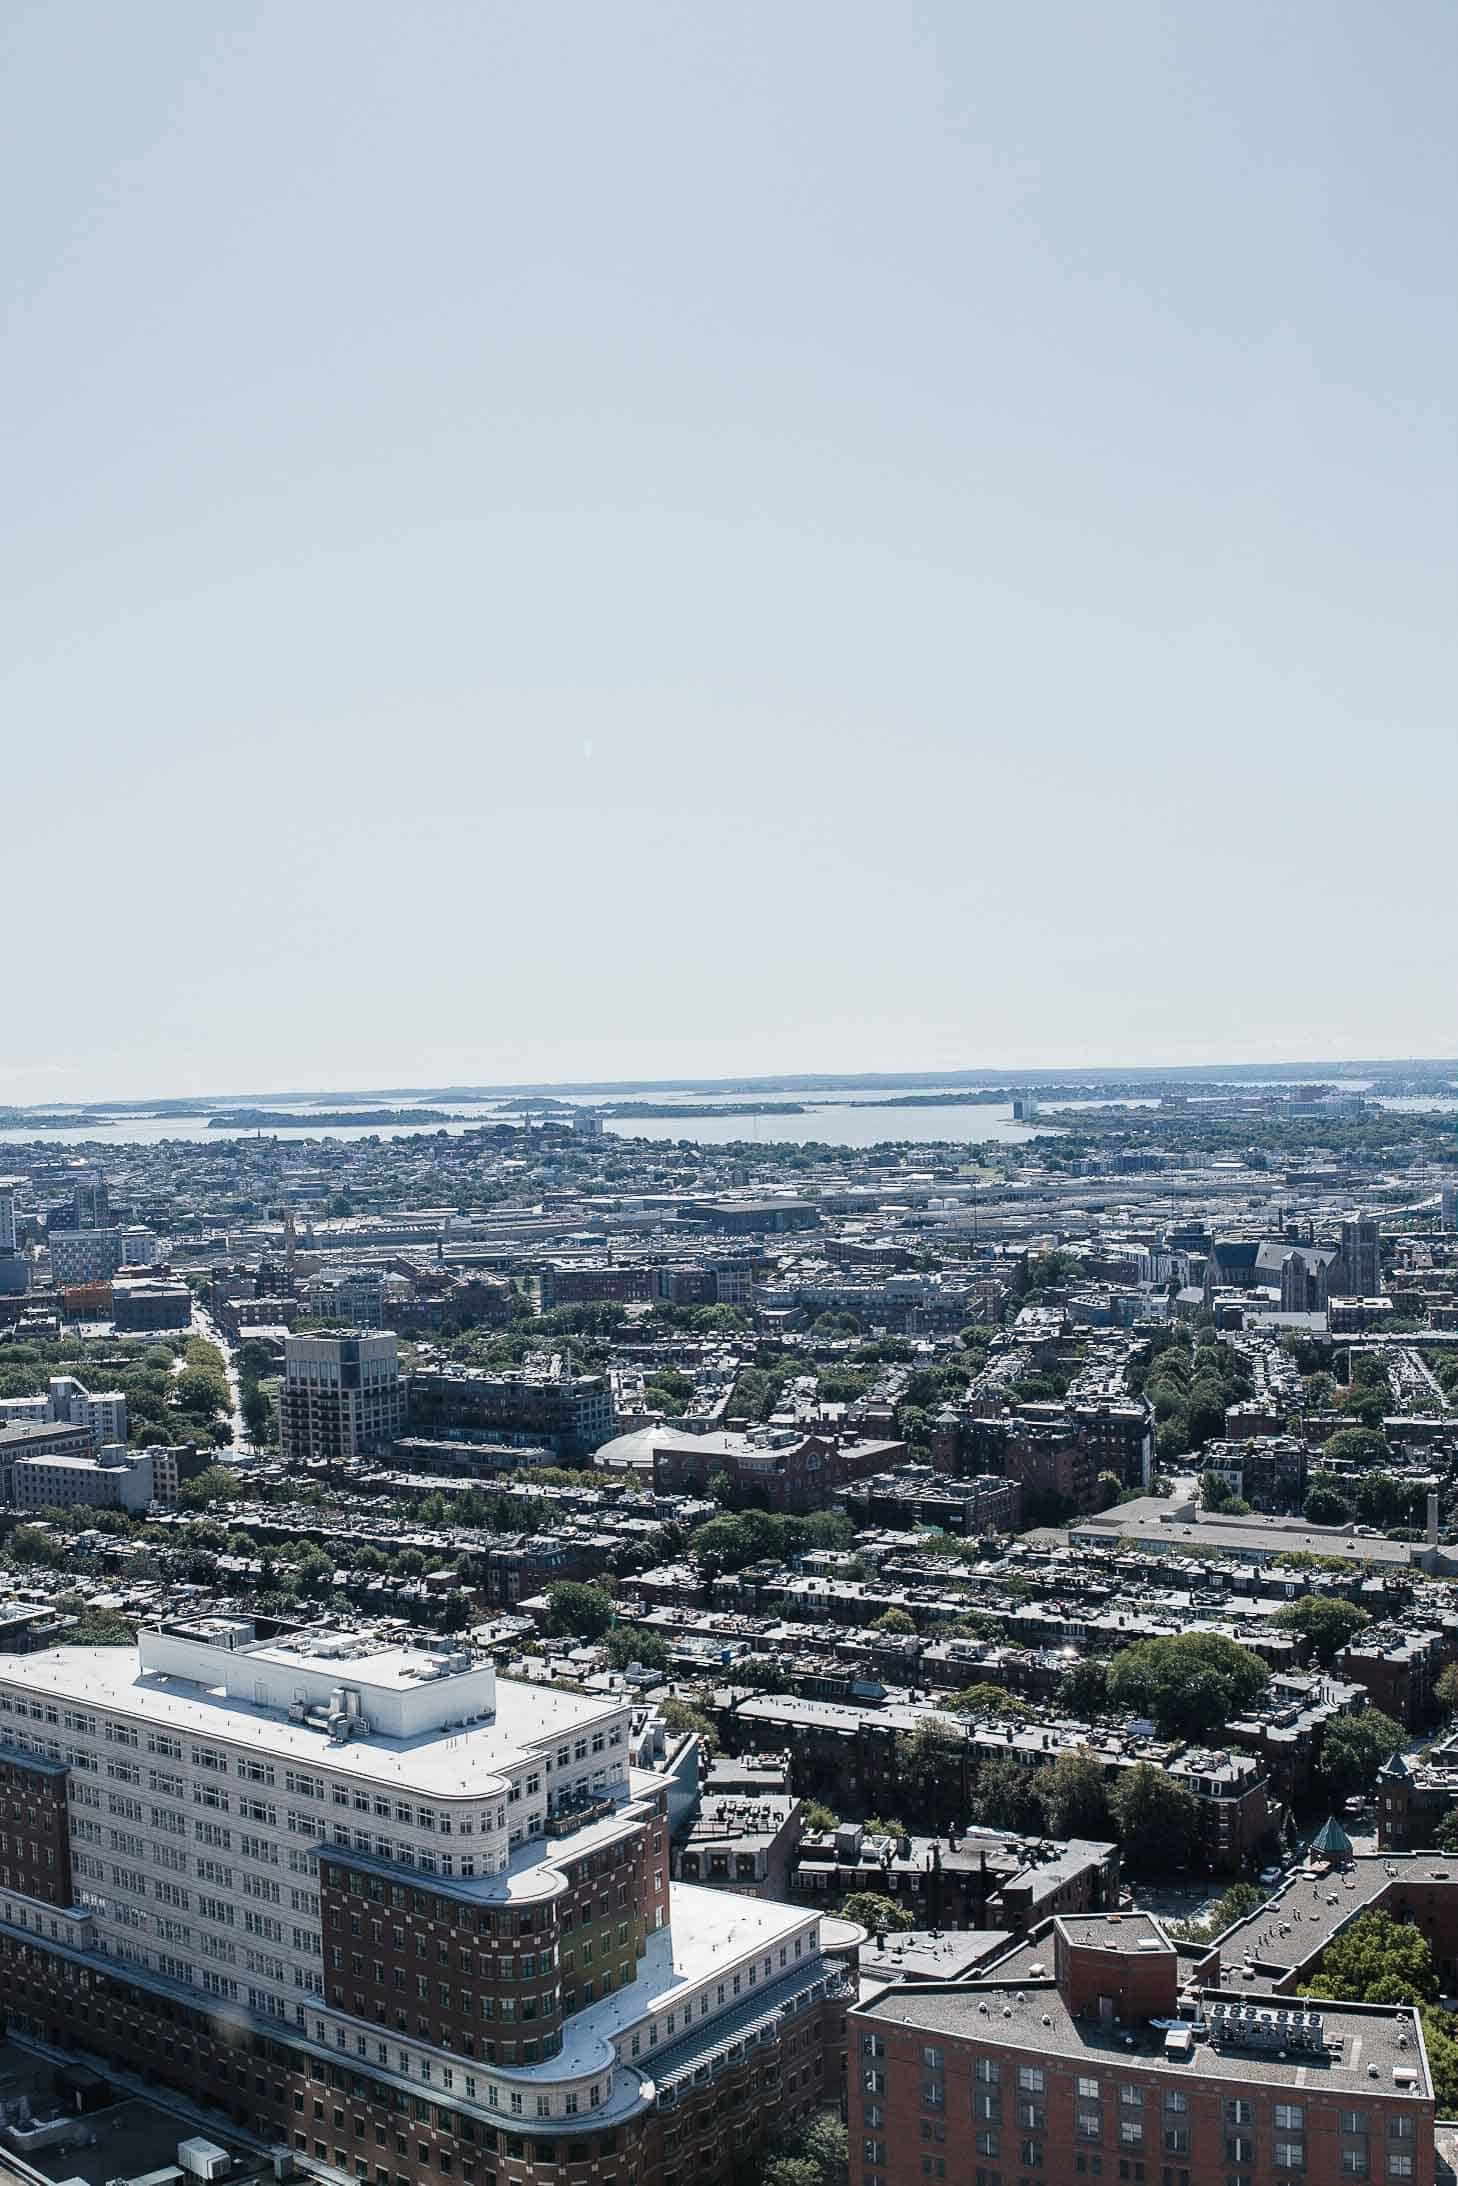 48 hours in boston is best captured in an airel view of boston  as a seen here